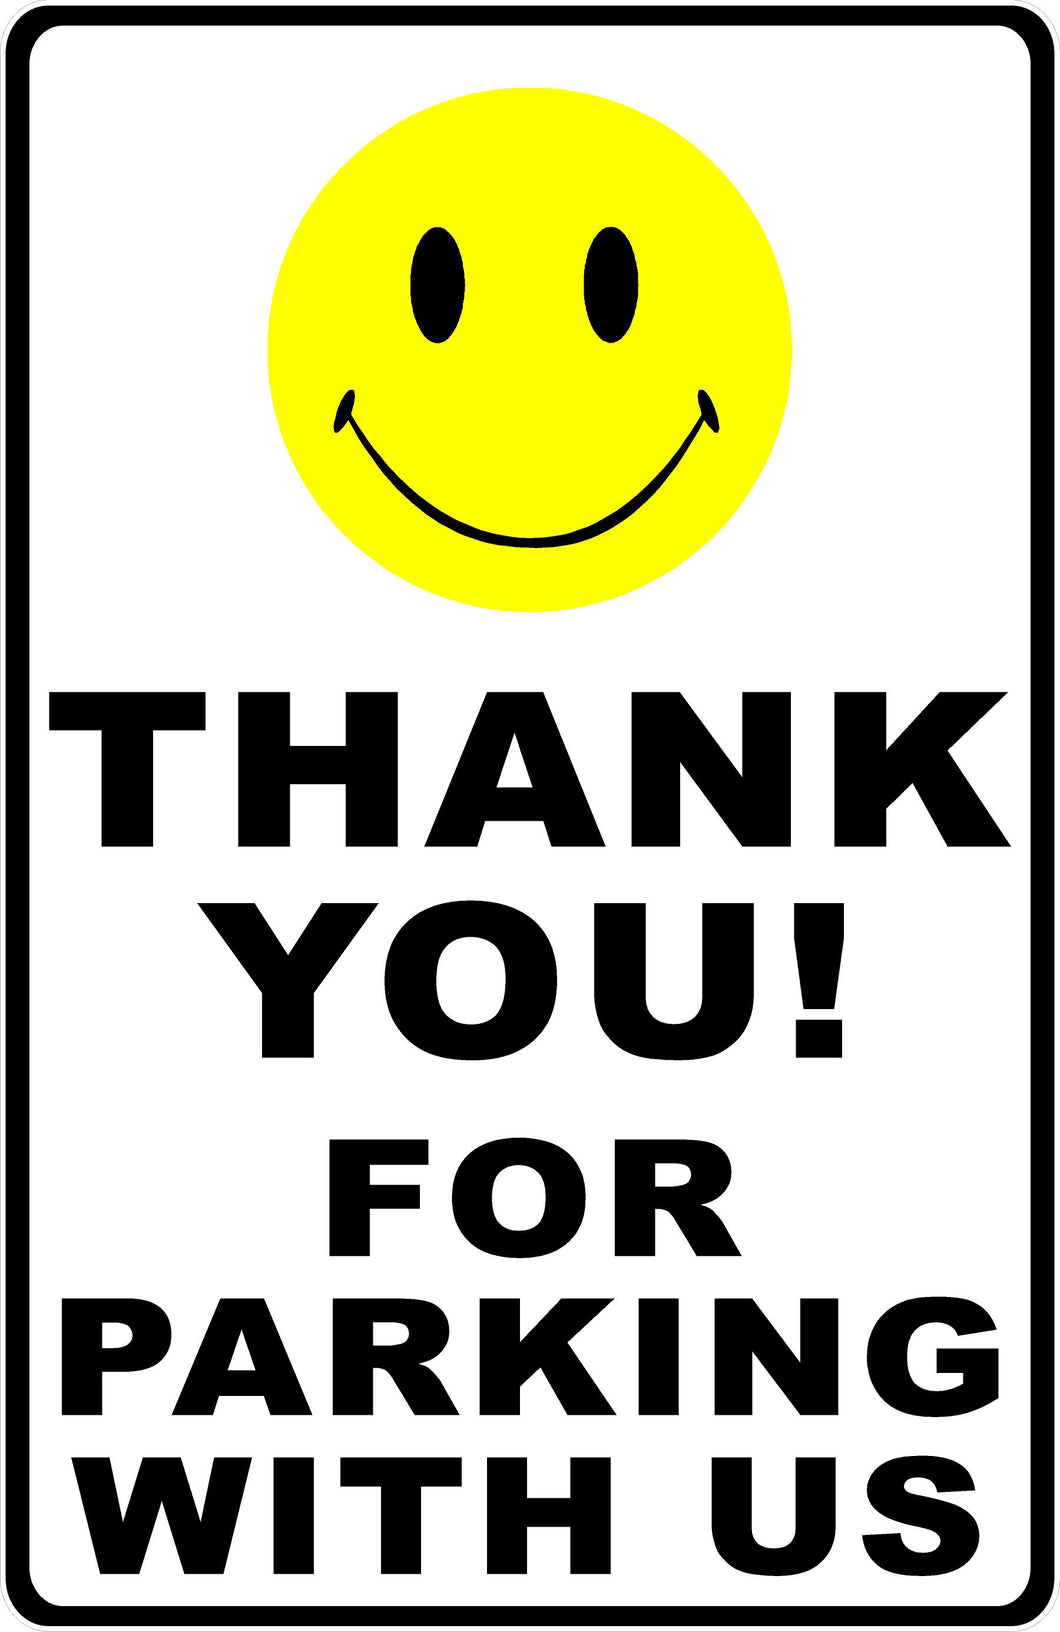 Thank you for Parking Here with Smiley Face Sign